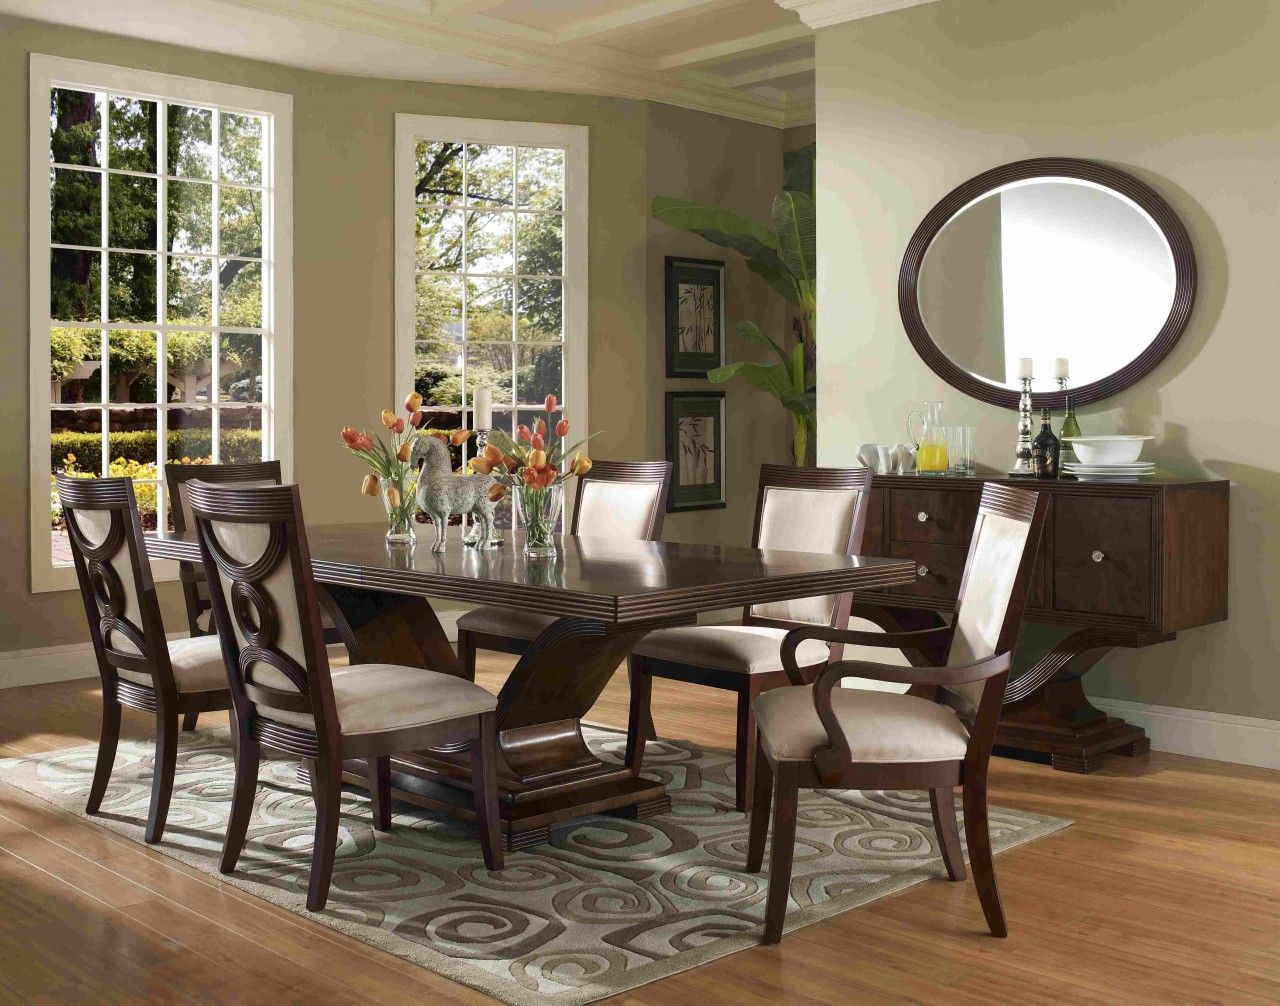 Contemporary Dining Room Tables And Chairs Inspiration How To Perfectly Choose Your Best Dining Room Table  Dining Room Inspiration Design